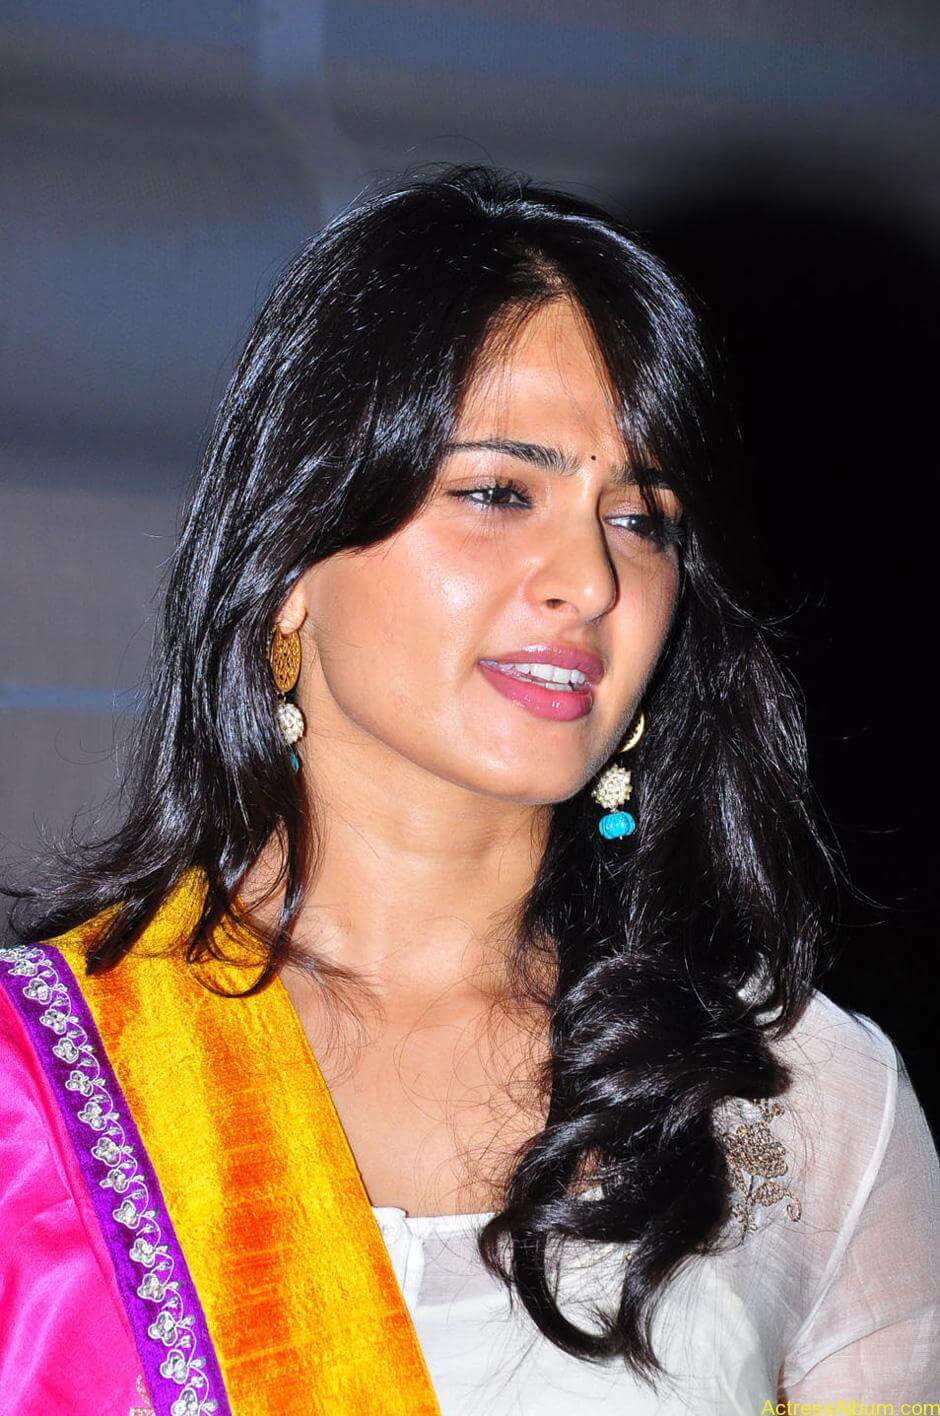 Anushka-Shetty-05-23-2011-Stills-003